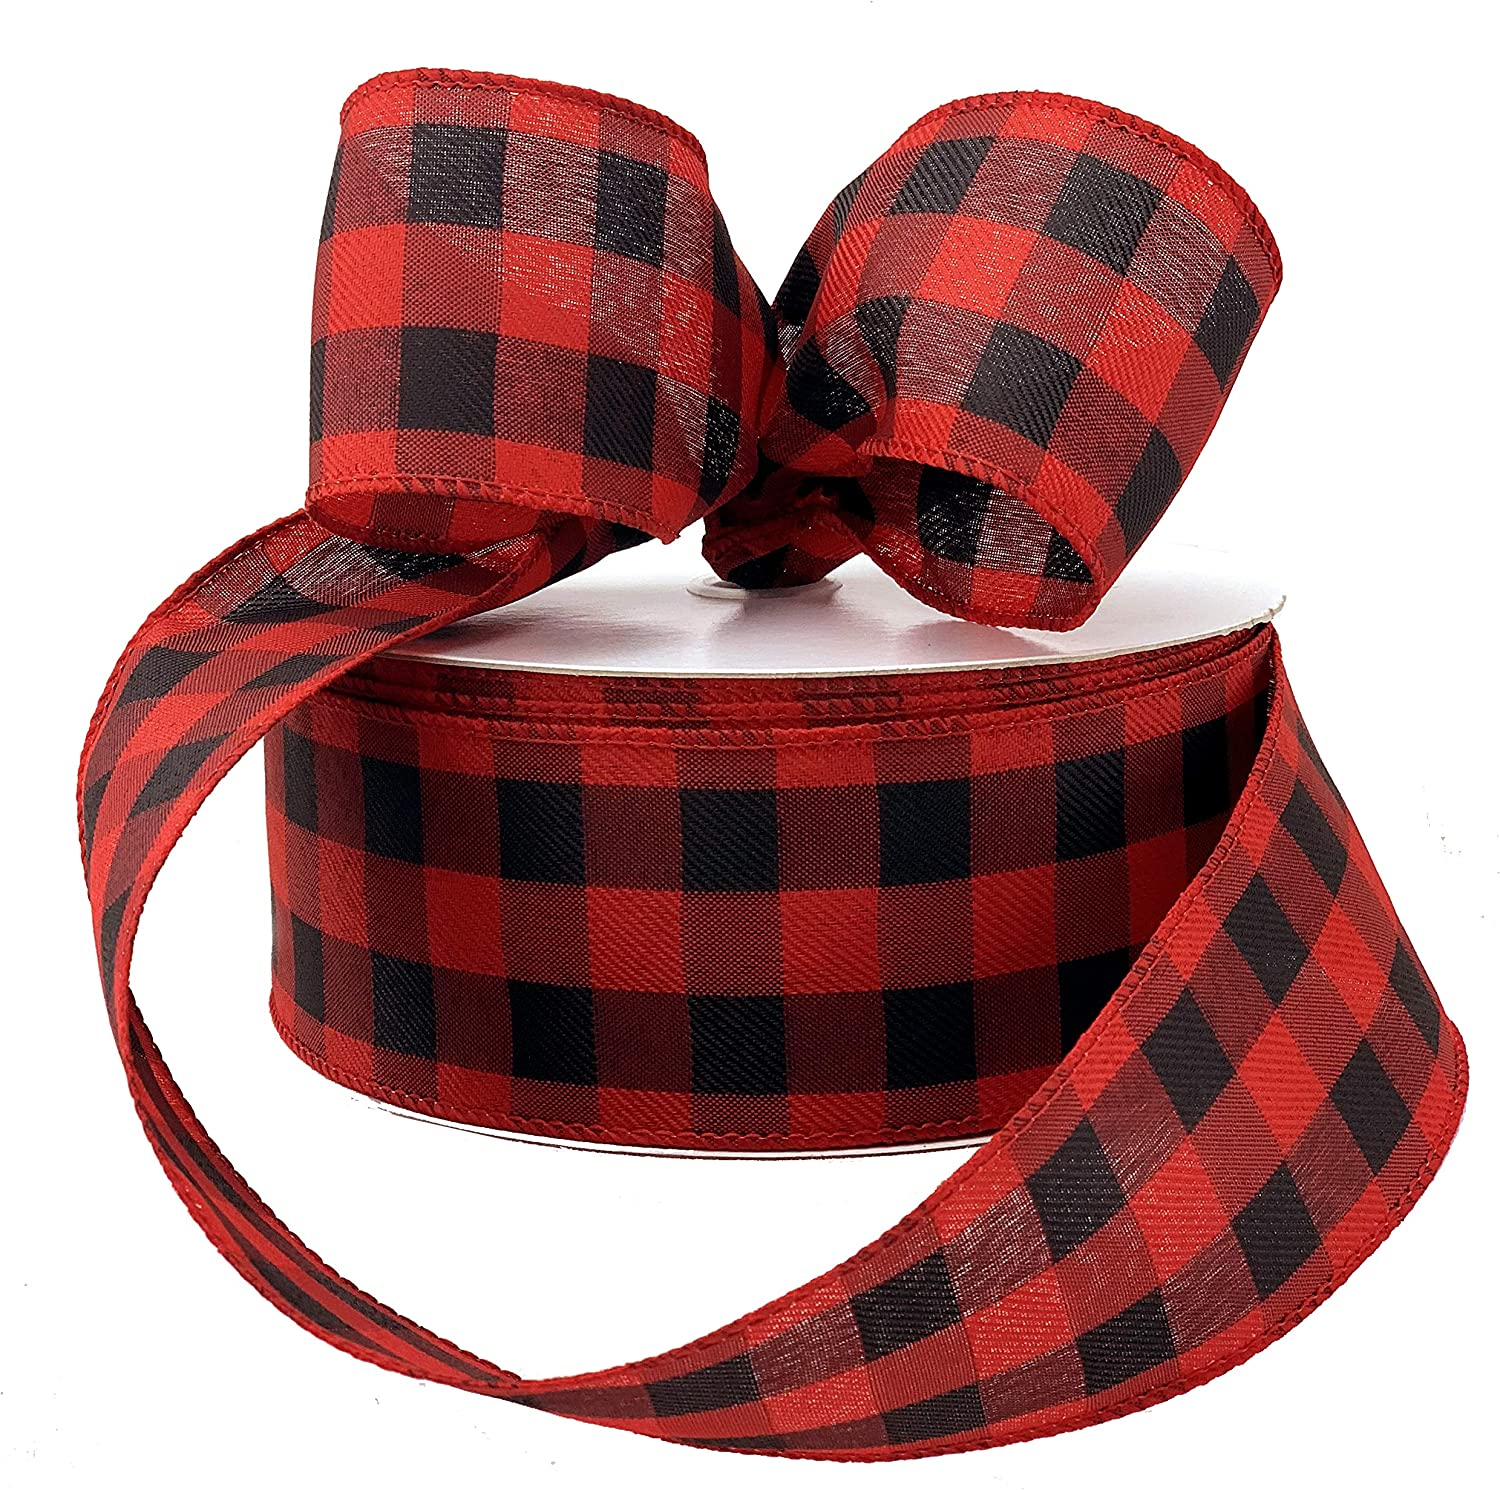 "Buffalo Plaid Wired Ribbon Decoration - 2 1/2"" x 50 Yards, Black & Red Plaid, Christmas, Wreath, Farmhouse Decor, Garland, Gifts, Wrapping, Wreaths, Bows, Valentine's Day"